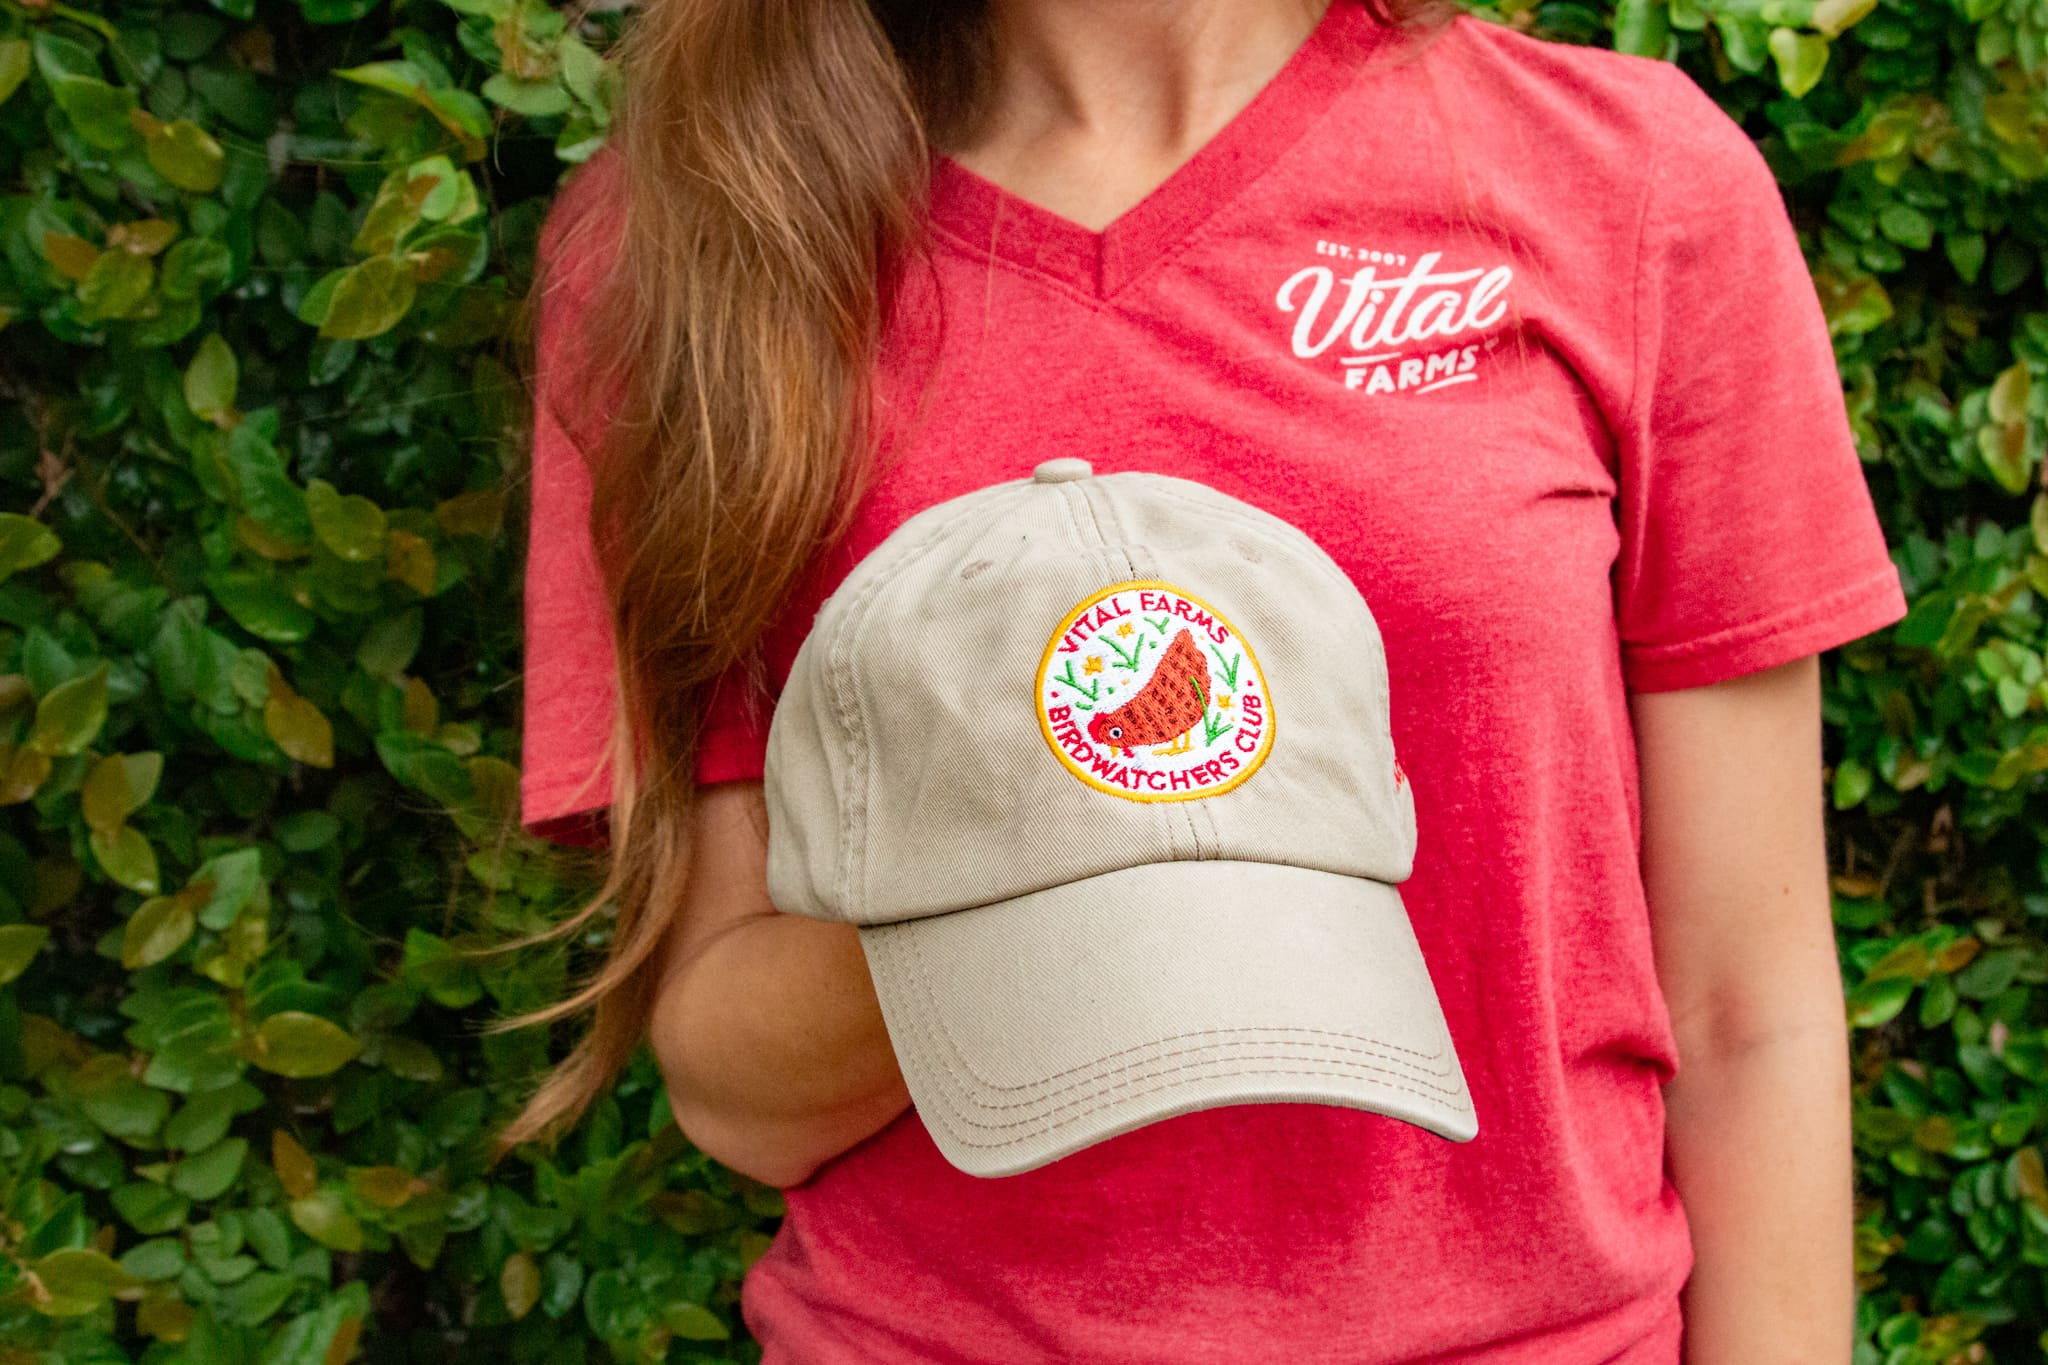 A woman in a red t-shirt with a vital farms logo holding a vital farms birdwatchers baseball cap.